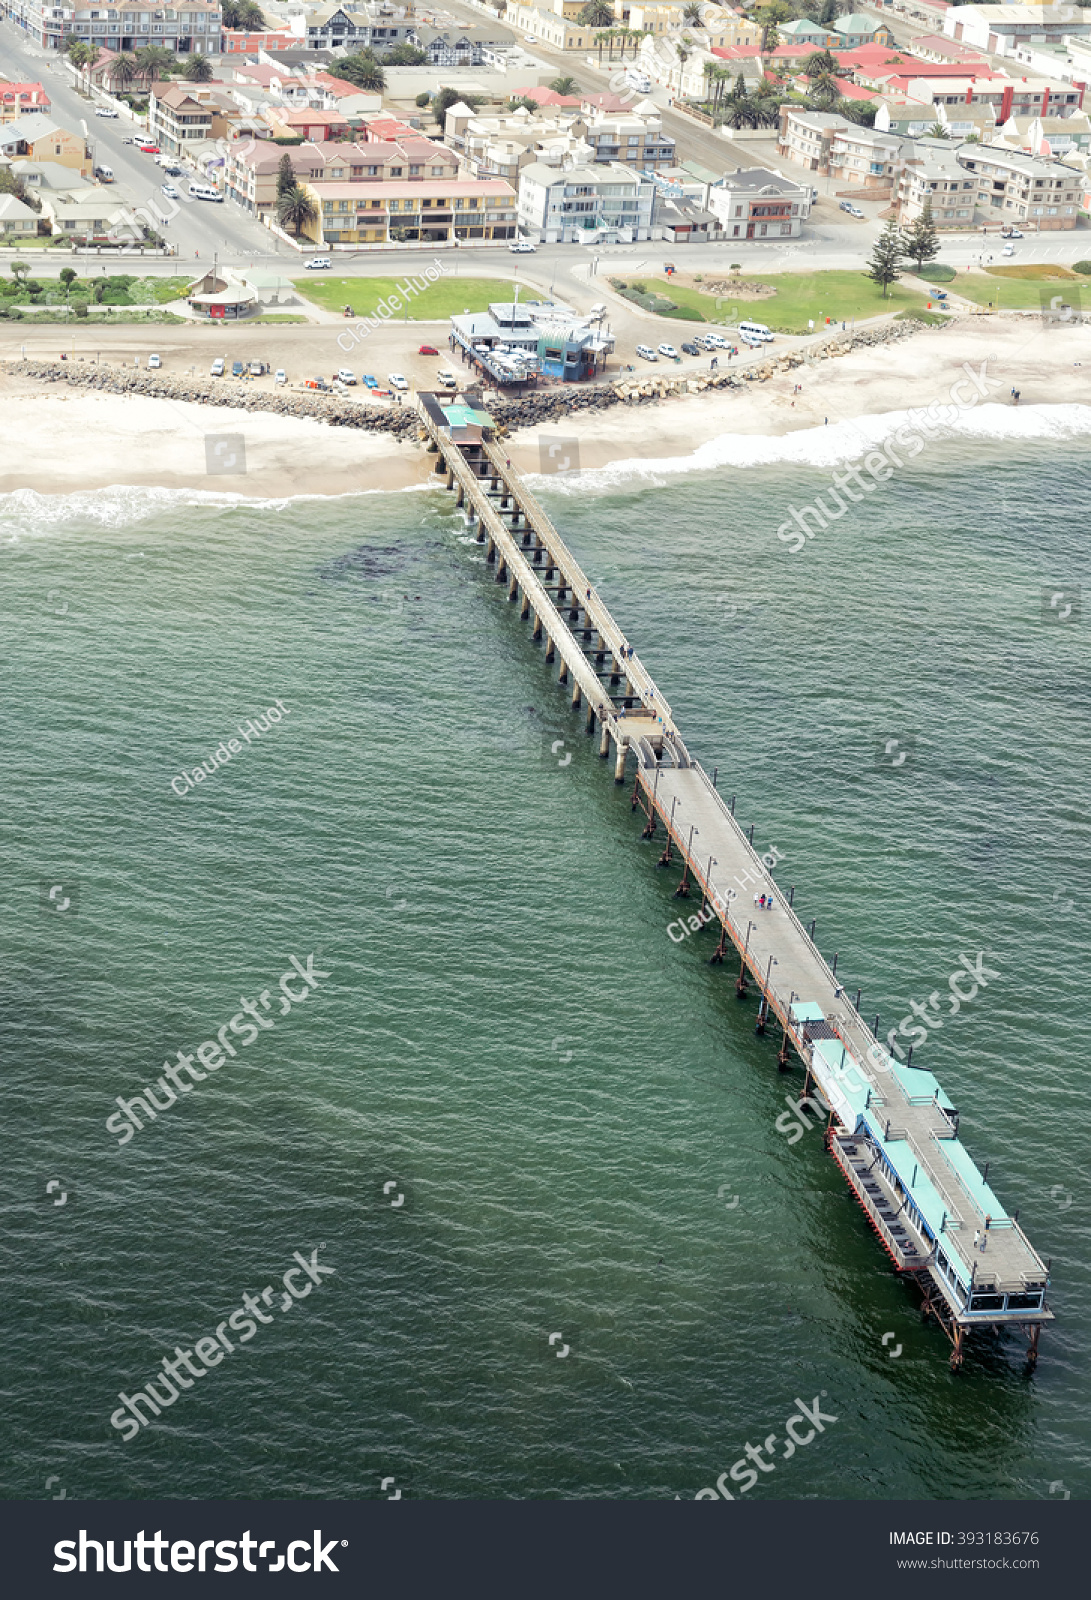 """SWAKOPMUND, NAMIBIA - SEPTEMBER 5, 2015 - Aerial view of the jetty in Swakomund, Namibia with the """"Jetty 1905"""" restaurant at the end. This is a very popular restaurant with tourists."""